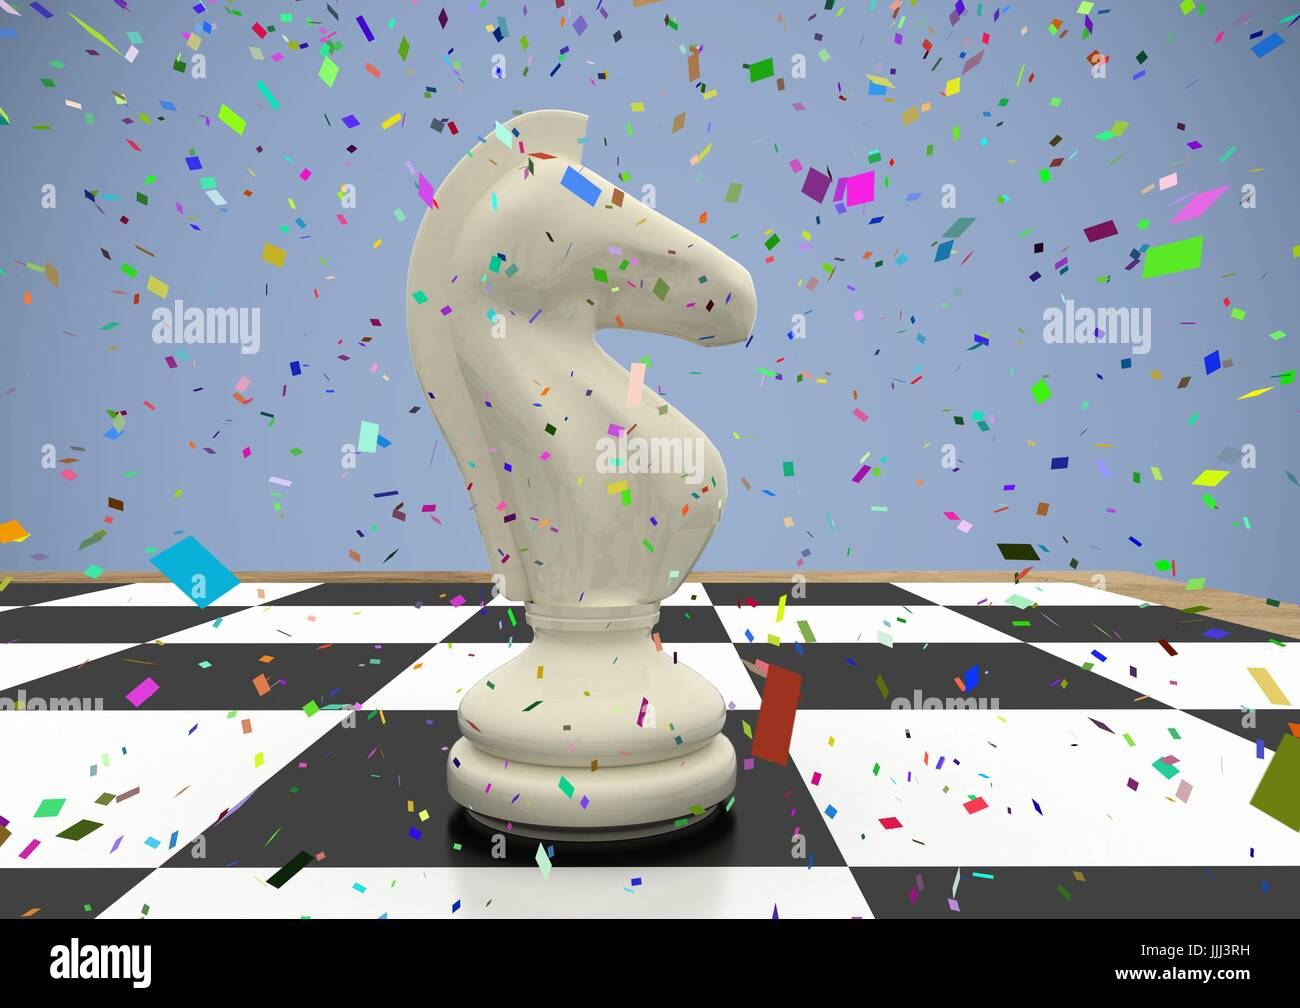 23a1c7f20 3D Chess piece against purple background with confetti - Stock Image